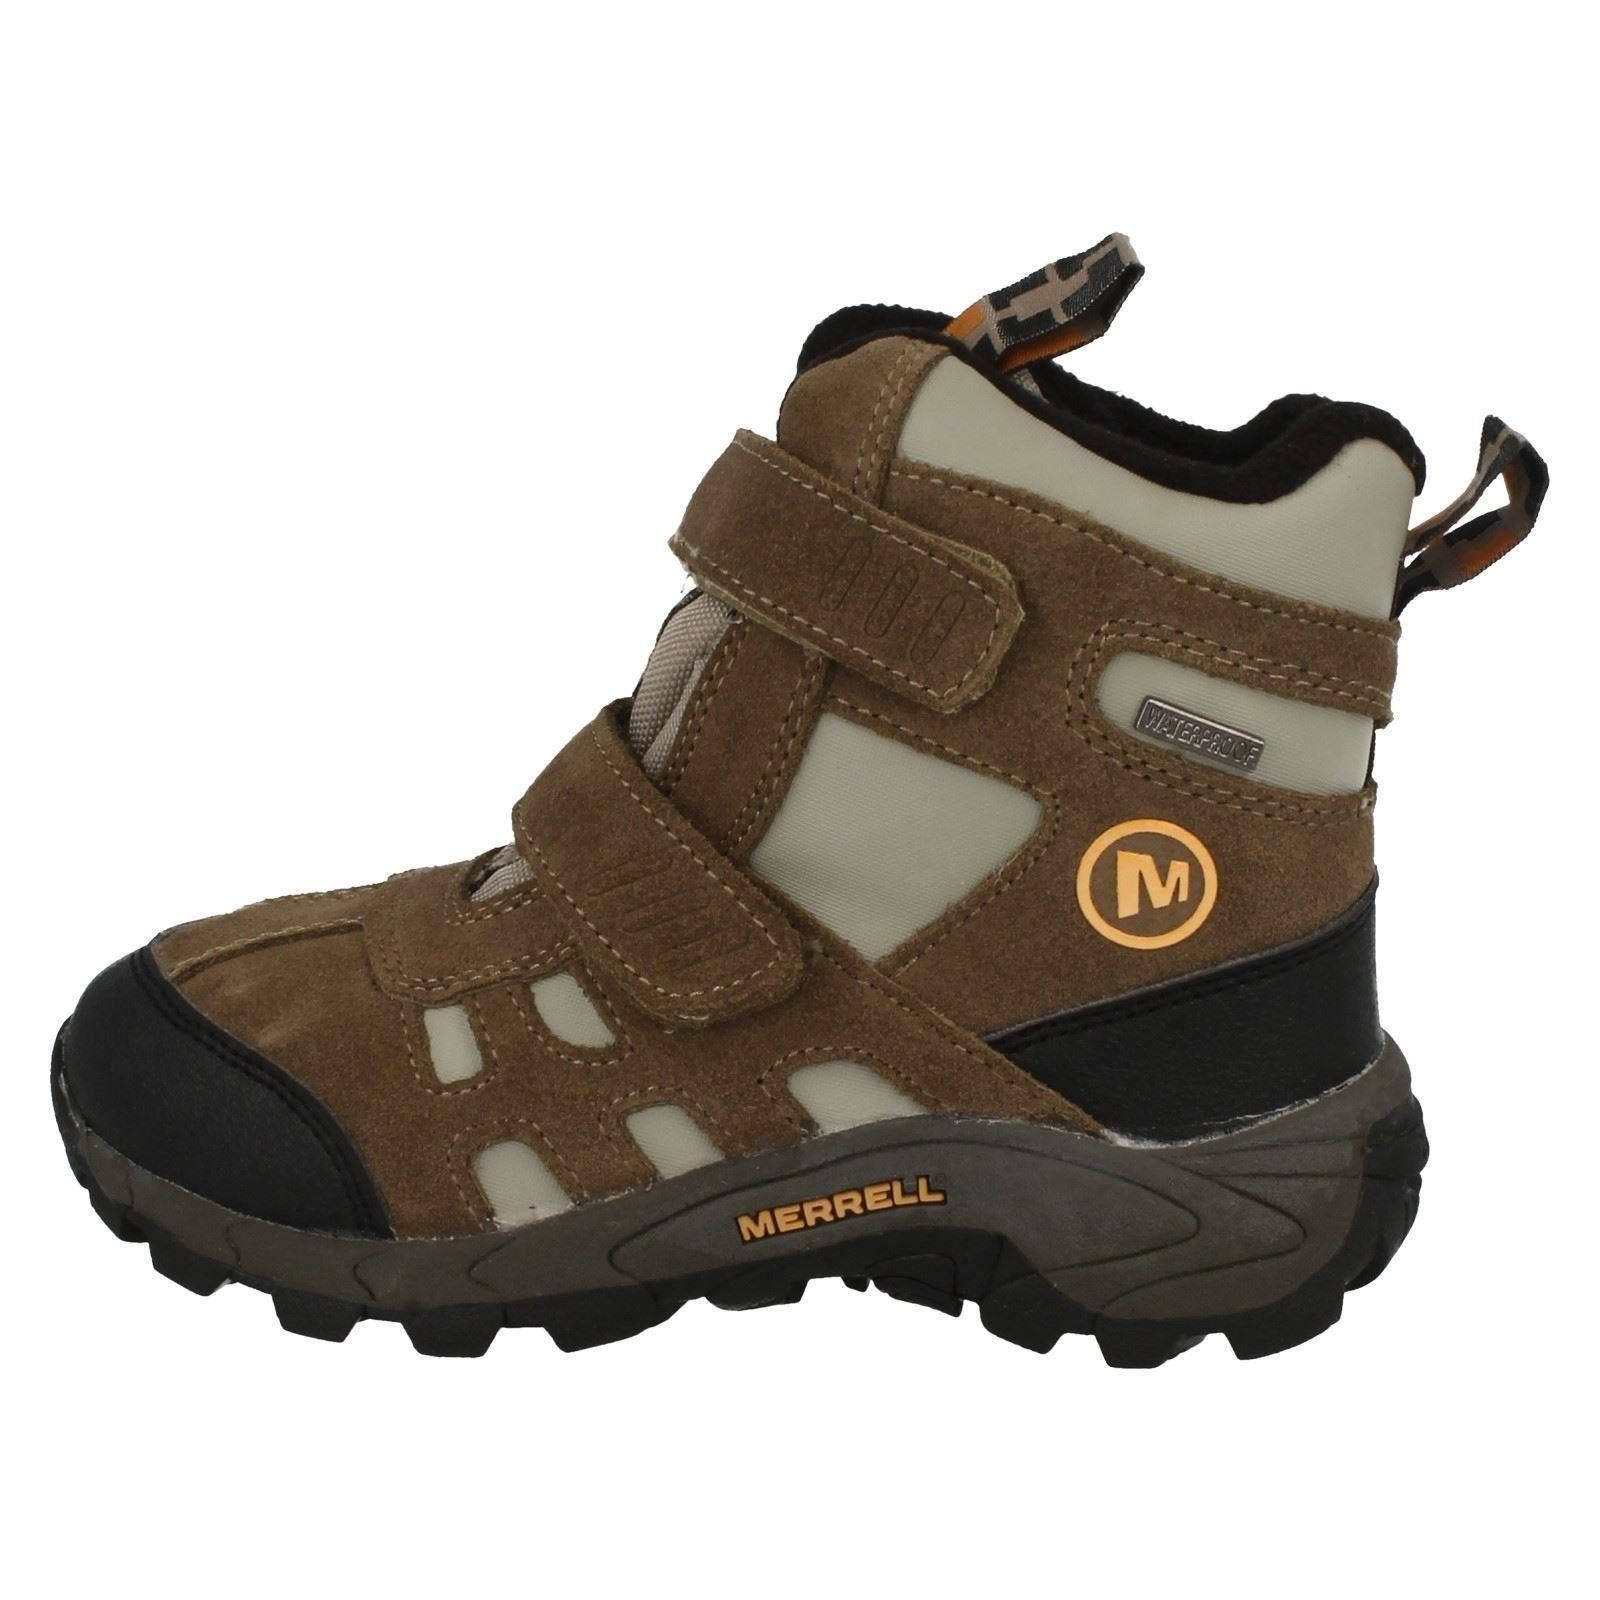 Enfants-Merrell-Impermeable-Bottine-Moab-Polar